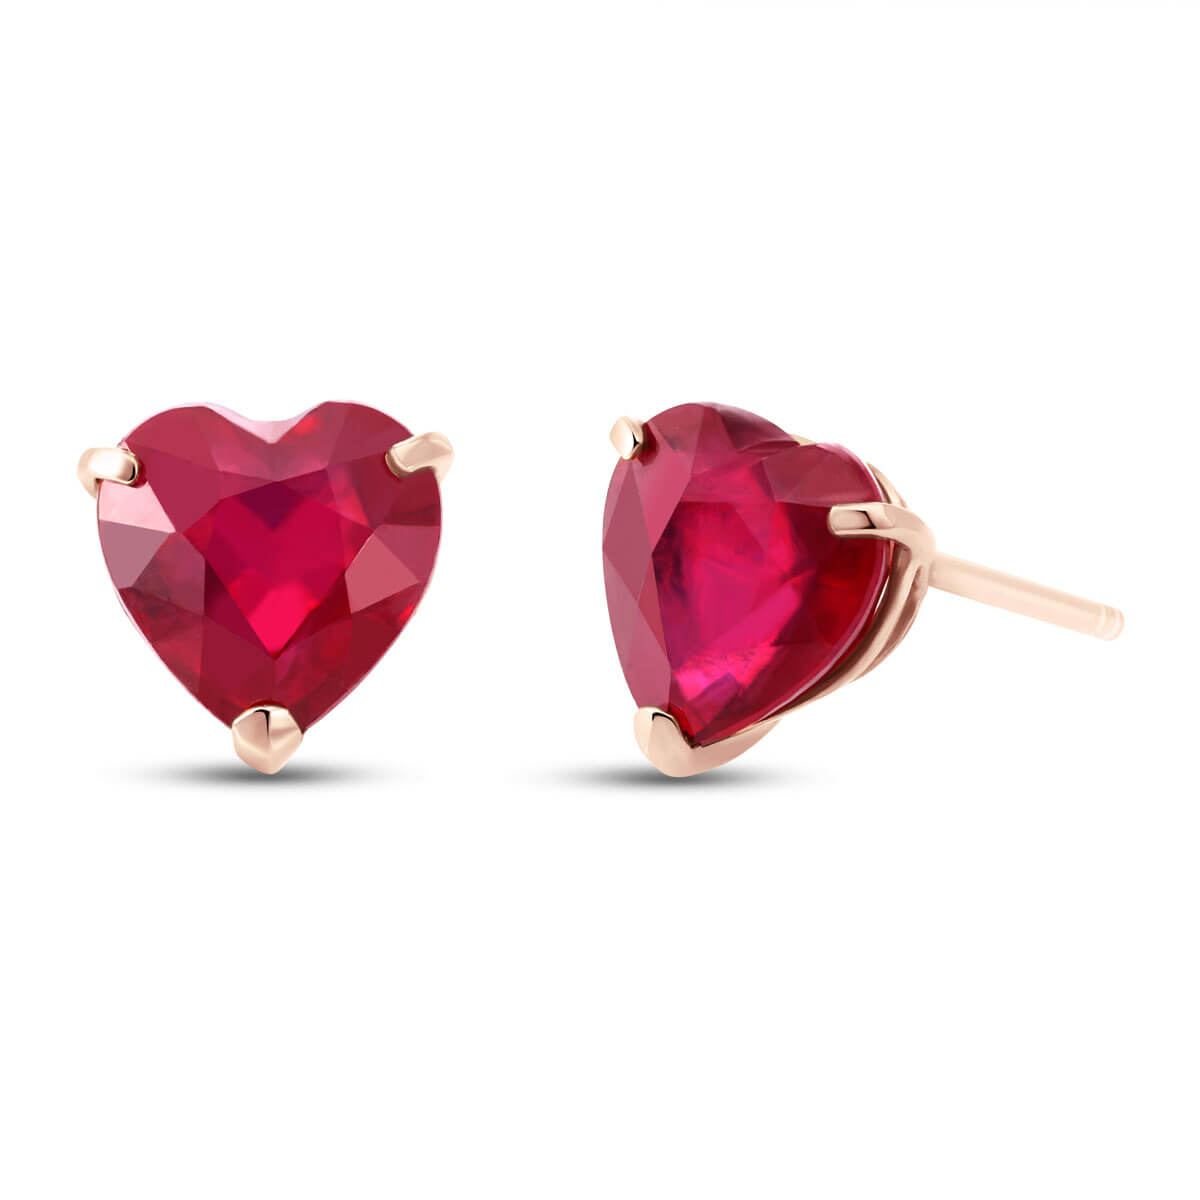 Ruby Stud Earrings 2.9 ctw in 9ct Rose Gold